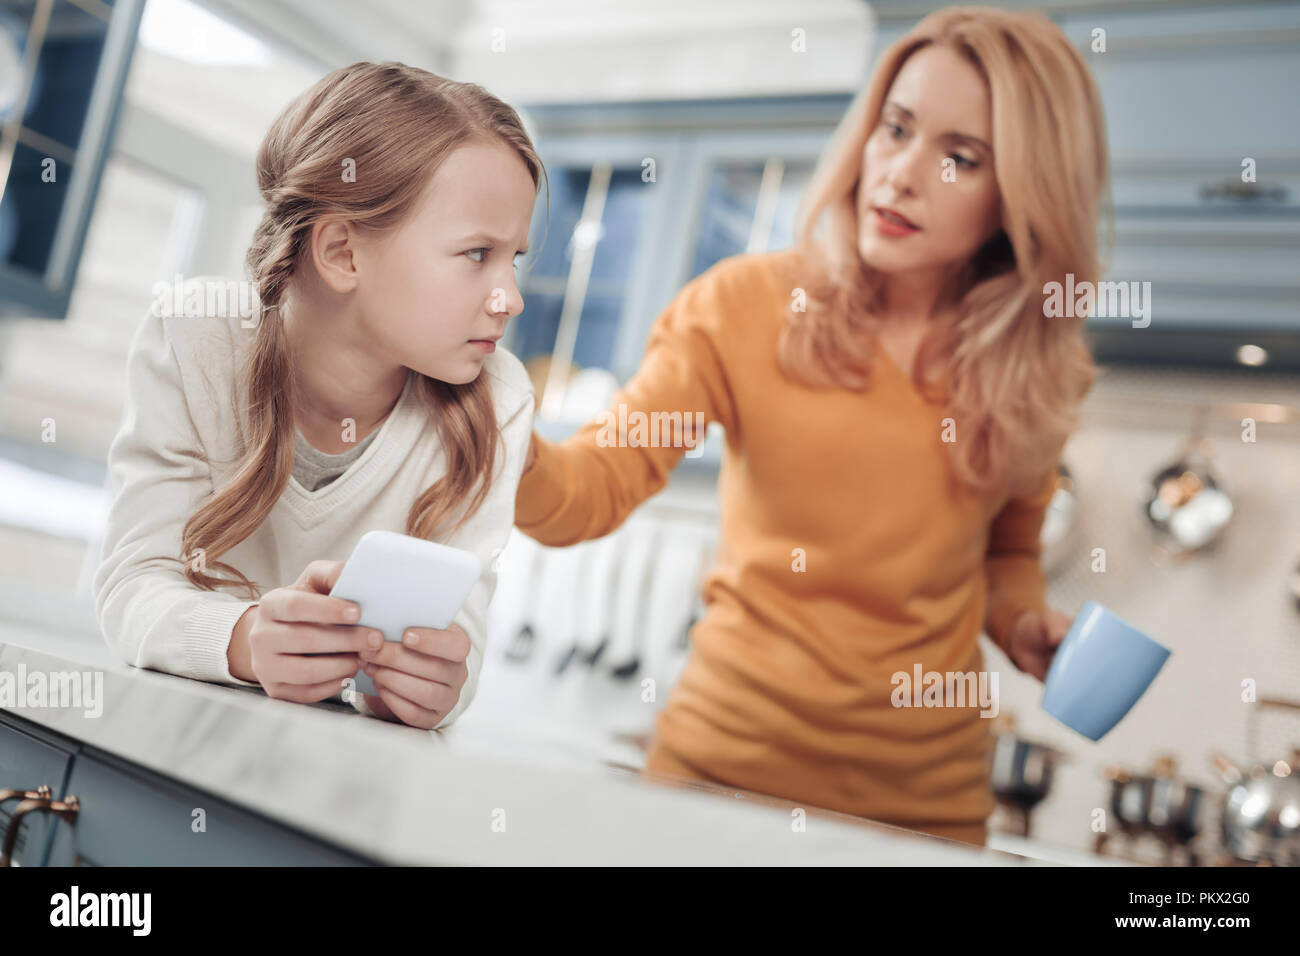 Angry little female pupil looking at her mother - Stock Image